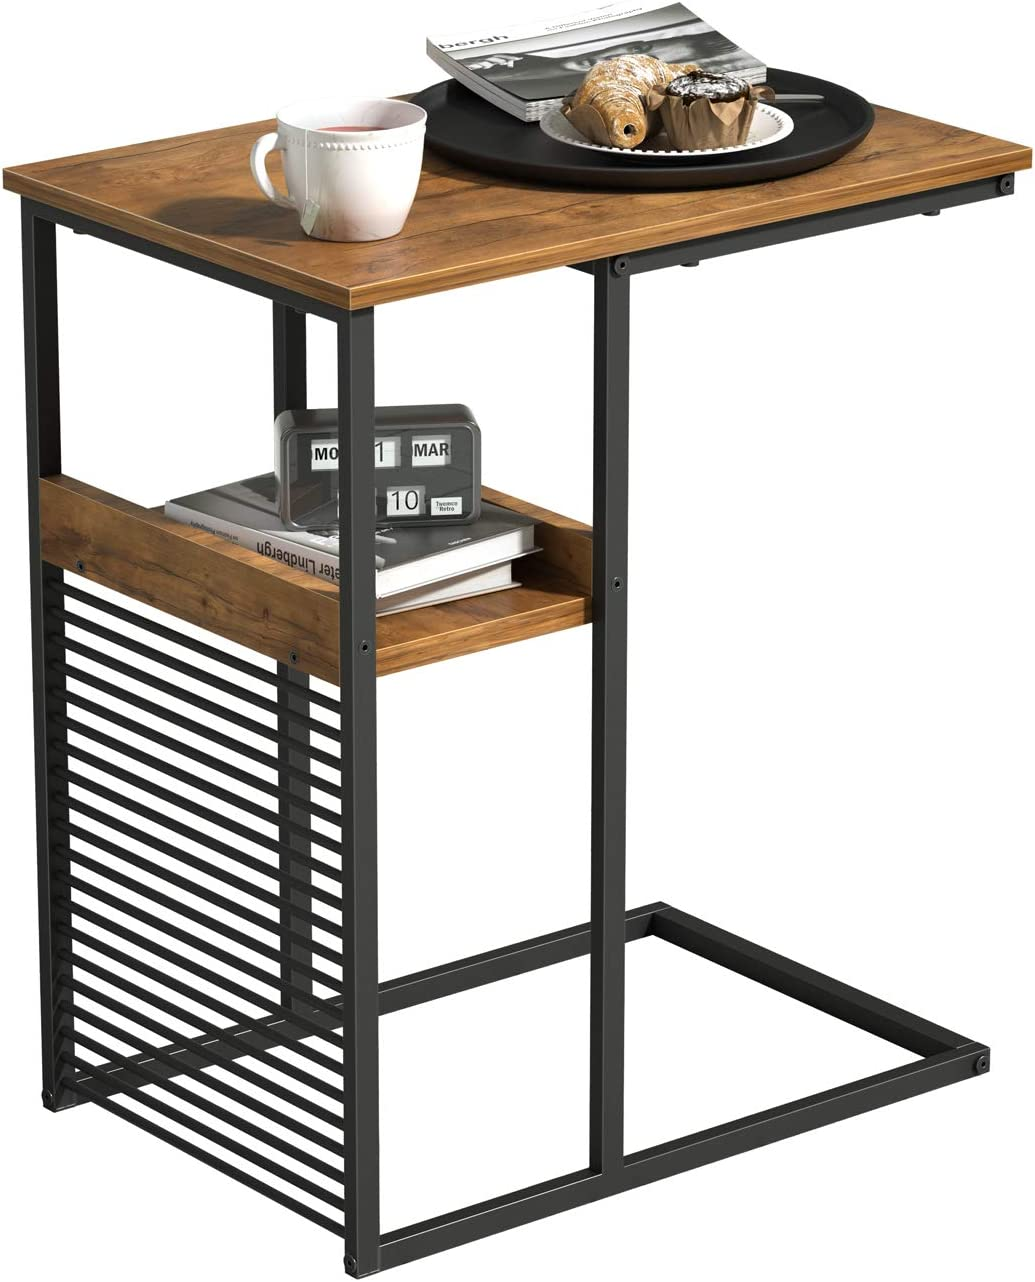 Cubiker Sofa Side End Table, Side Table with Wooden Shelf, C Shaped Couch Table for Living Room, Bedroom, Metal Frame Nightstand